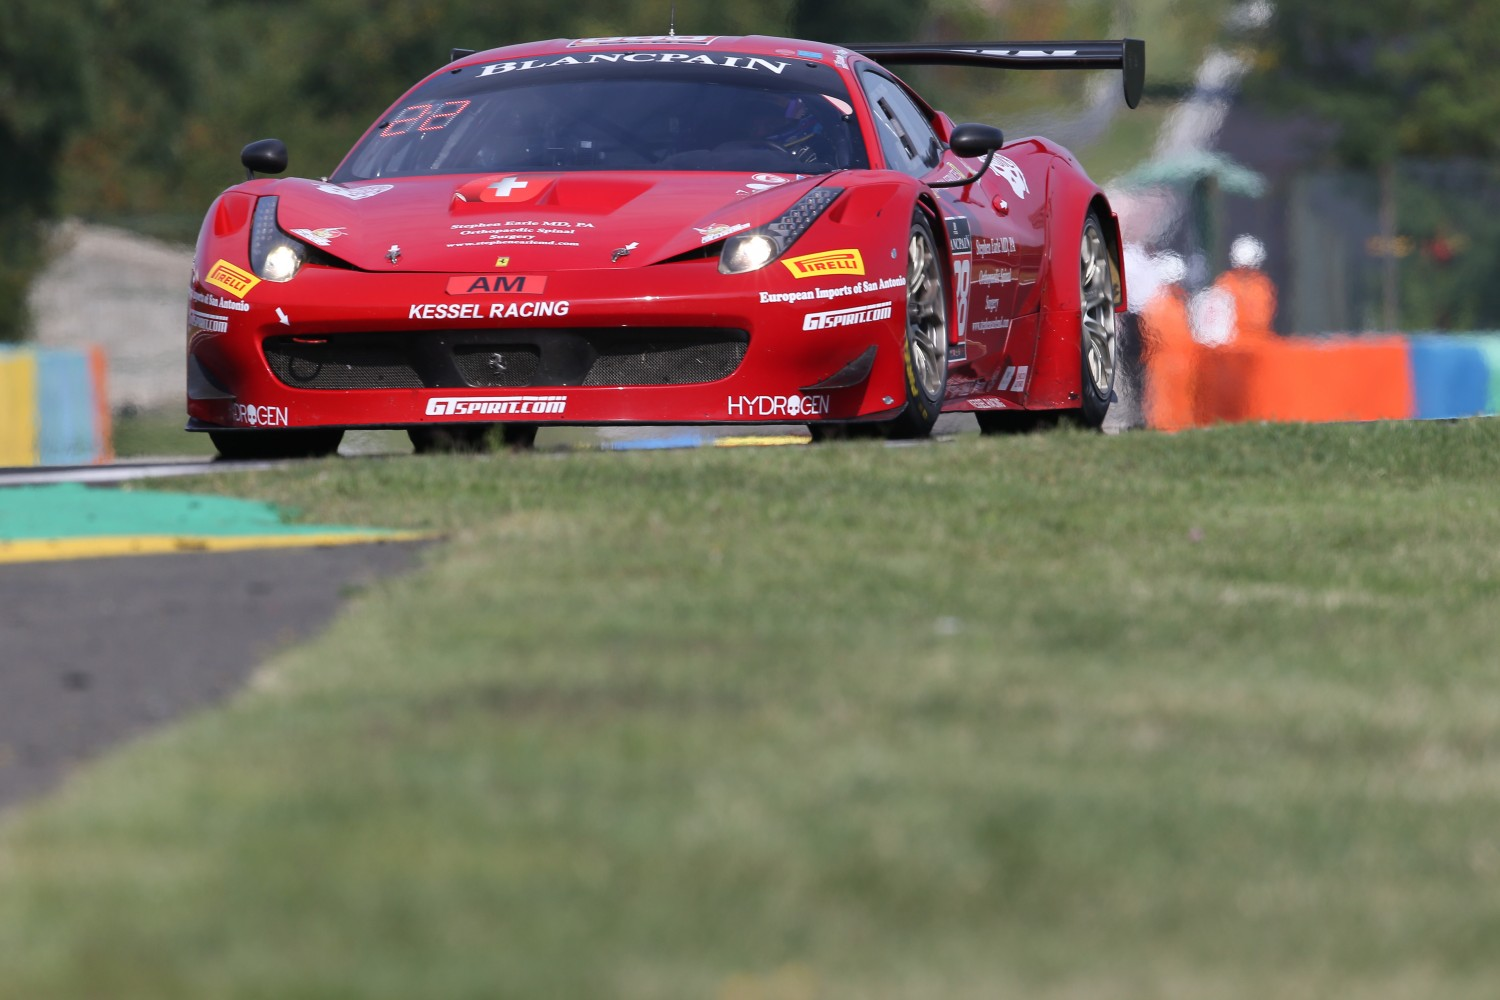 #888 KESSEL RACING (CHE) FERRARI 488 GT3 STEPHAN EARLE (USA) DAVID PEREL (RZA) | OLIVIER BEROUD / VISION SPORT AGENCY